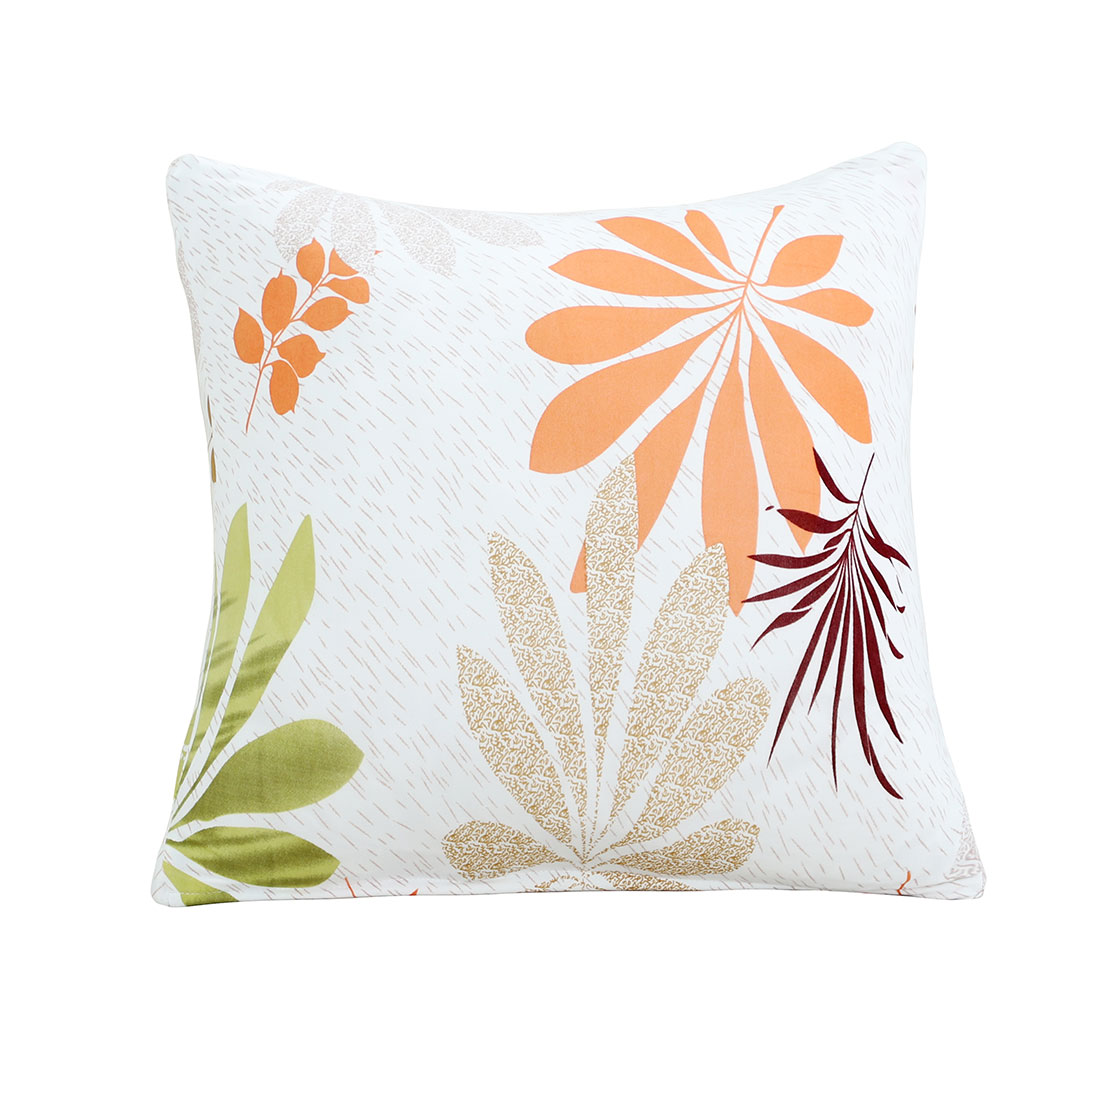 18 x 18 Inches Polyester Flower Pattern Square Waist Back Pillowcase Cushion Cover